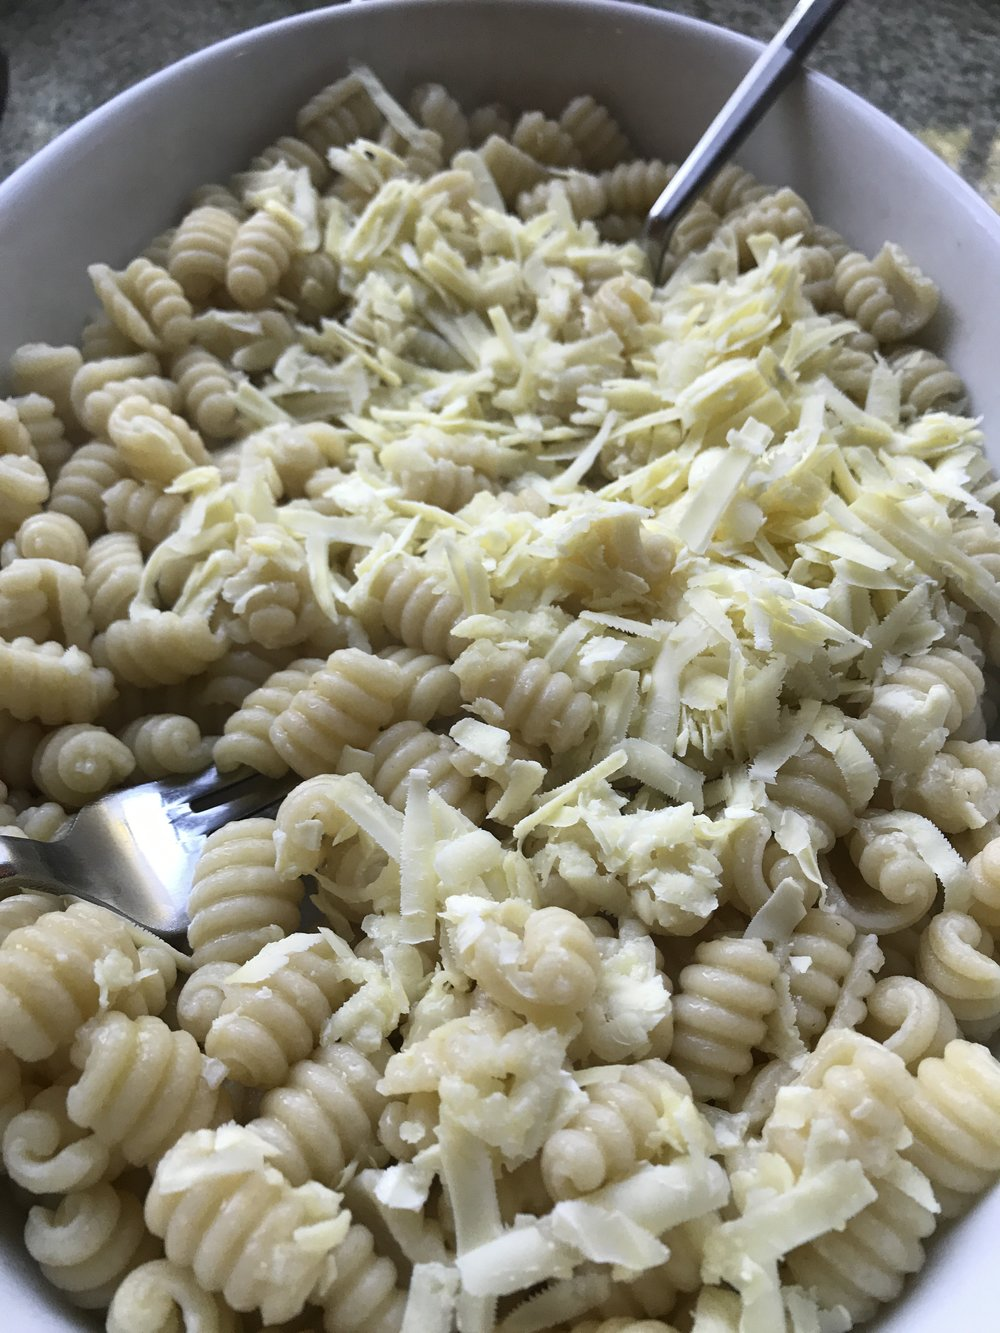 Toss the cheese with the pasta till it melts into the pasta.